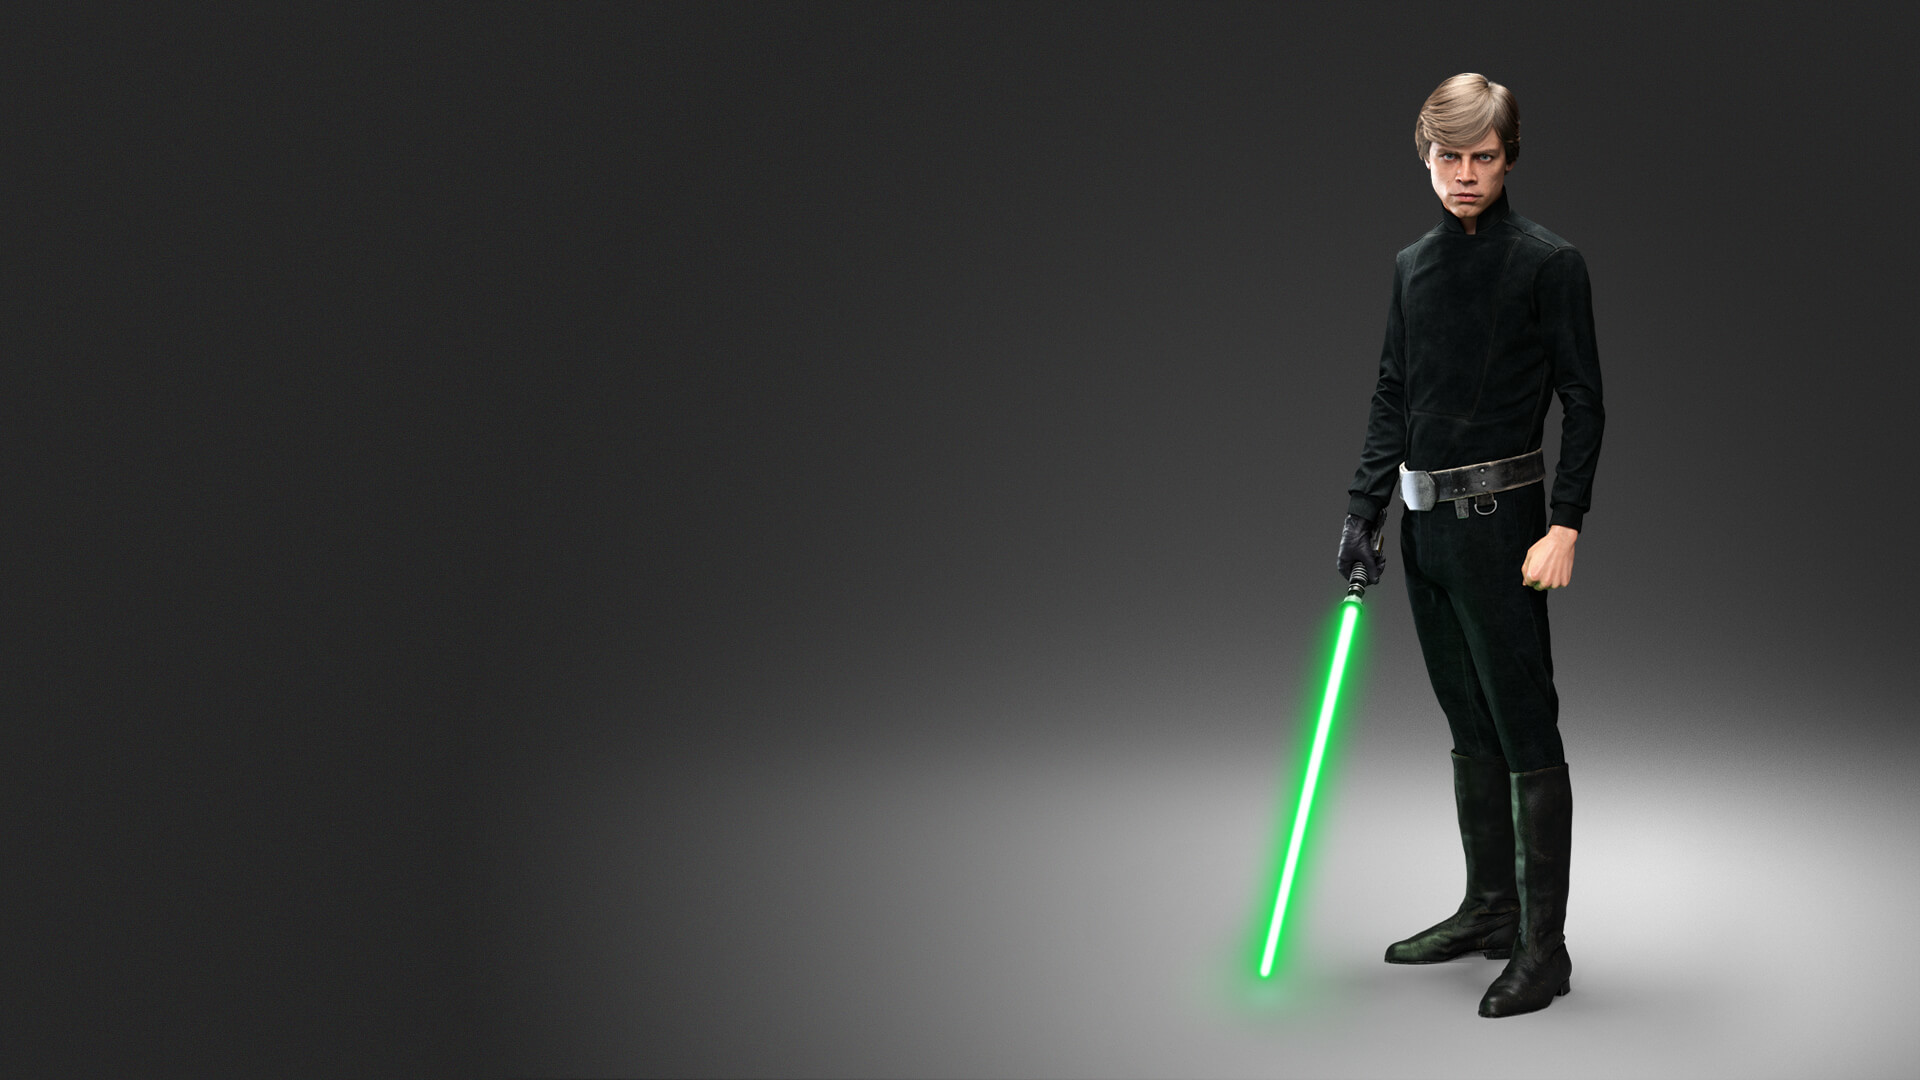 Luke Skywalker Wallpaper 77 Images